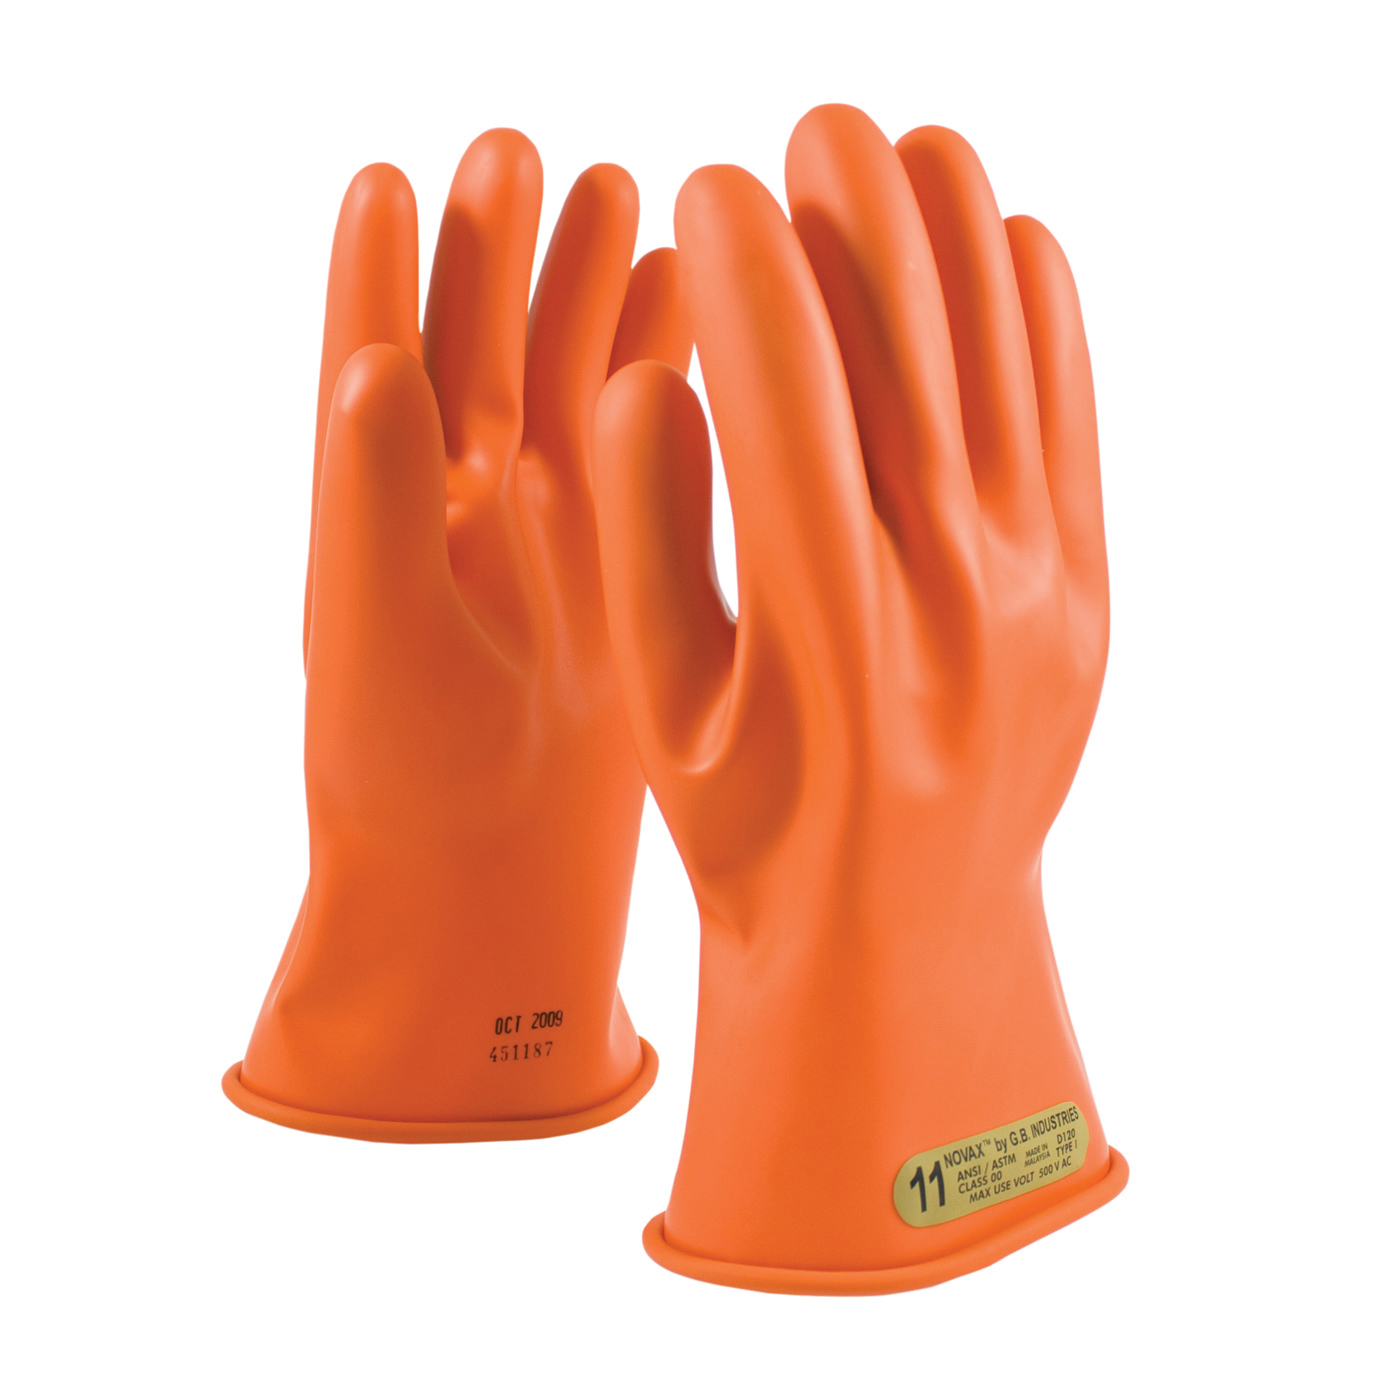 Novax® 147-00-11/10 Insulating Unisex Electrical Safety Gloves, SZ 10, Natural Rubber, Orange, 11 in L, ASTM Class: Class 00, 500 VAC/750 VDC Max Use Voltage